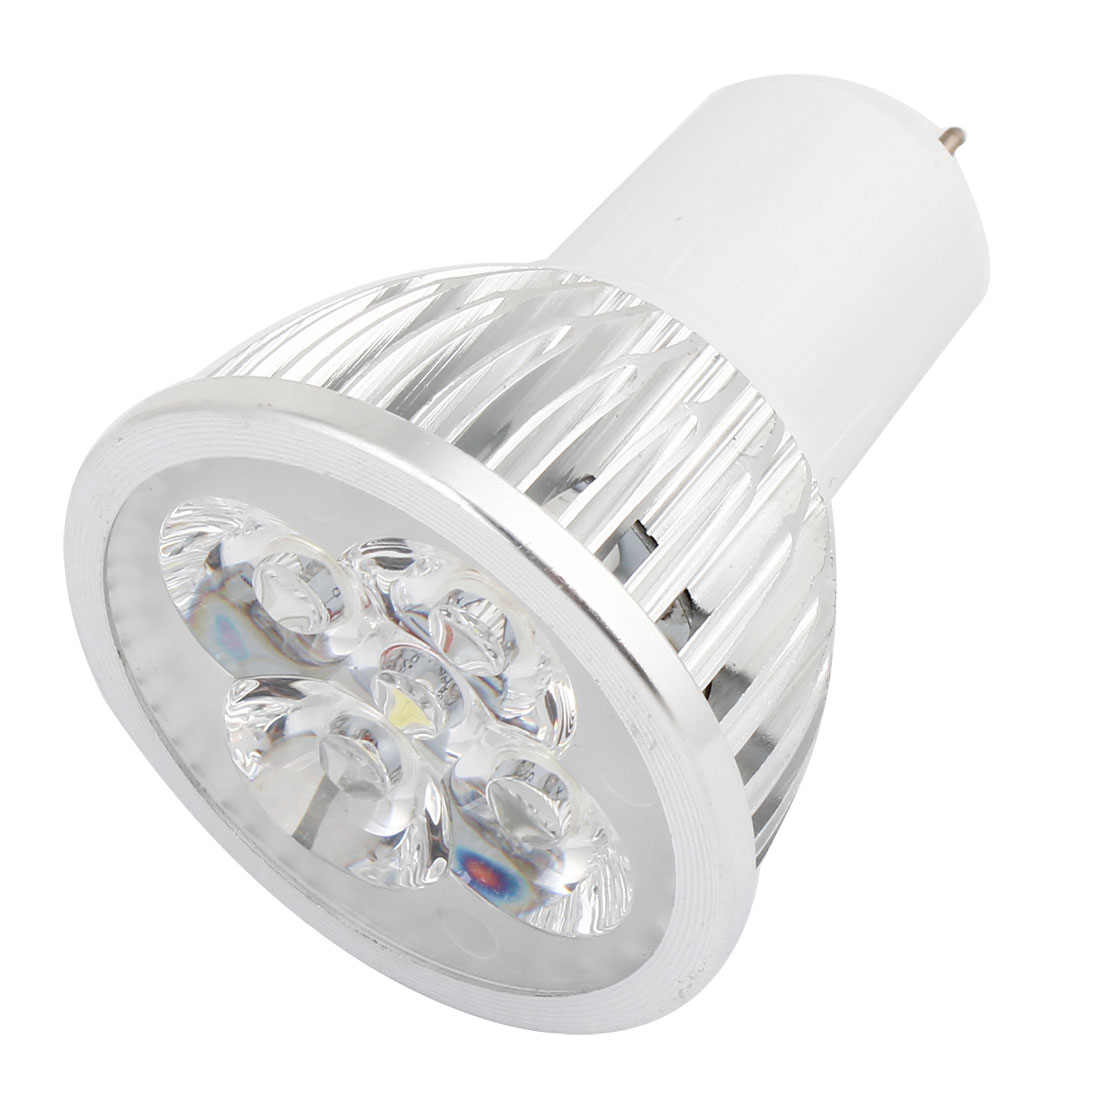 AC 85-265V 4W MR16 High Power White LED Spotlight Light Lamp Bulb